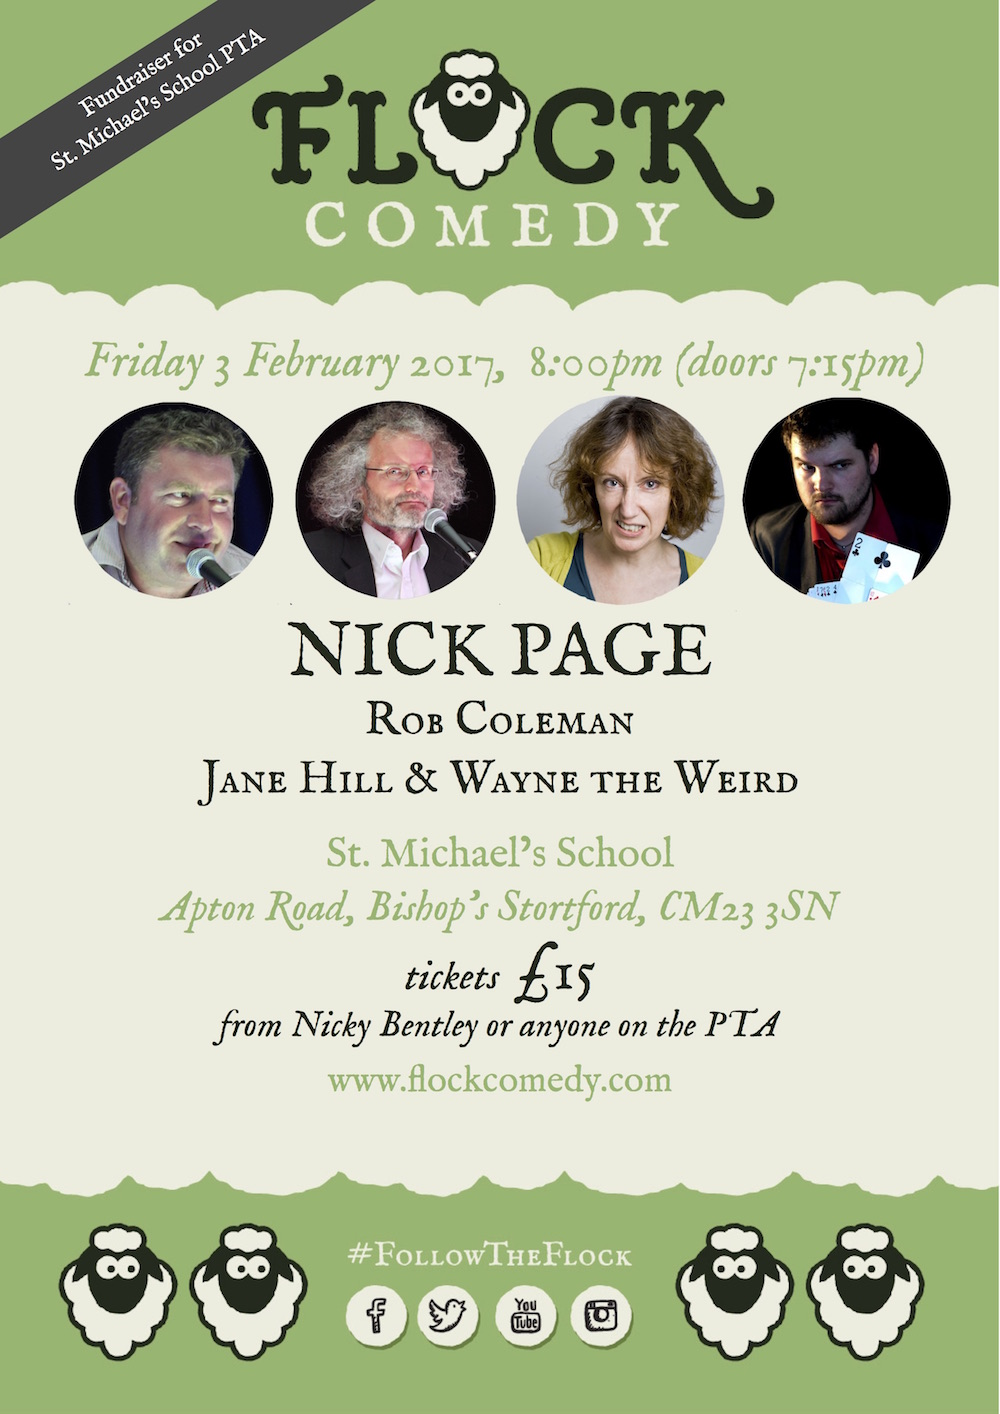 Flock Comedy's evening of stand-up comedy in Bishops Stortford